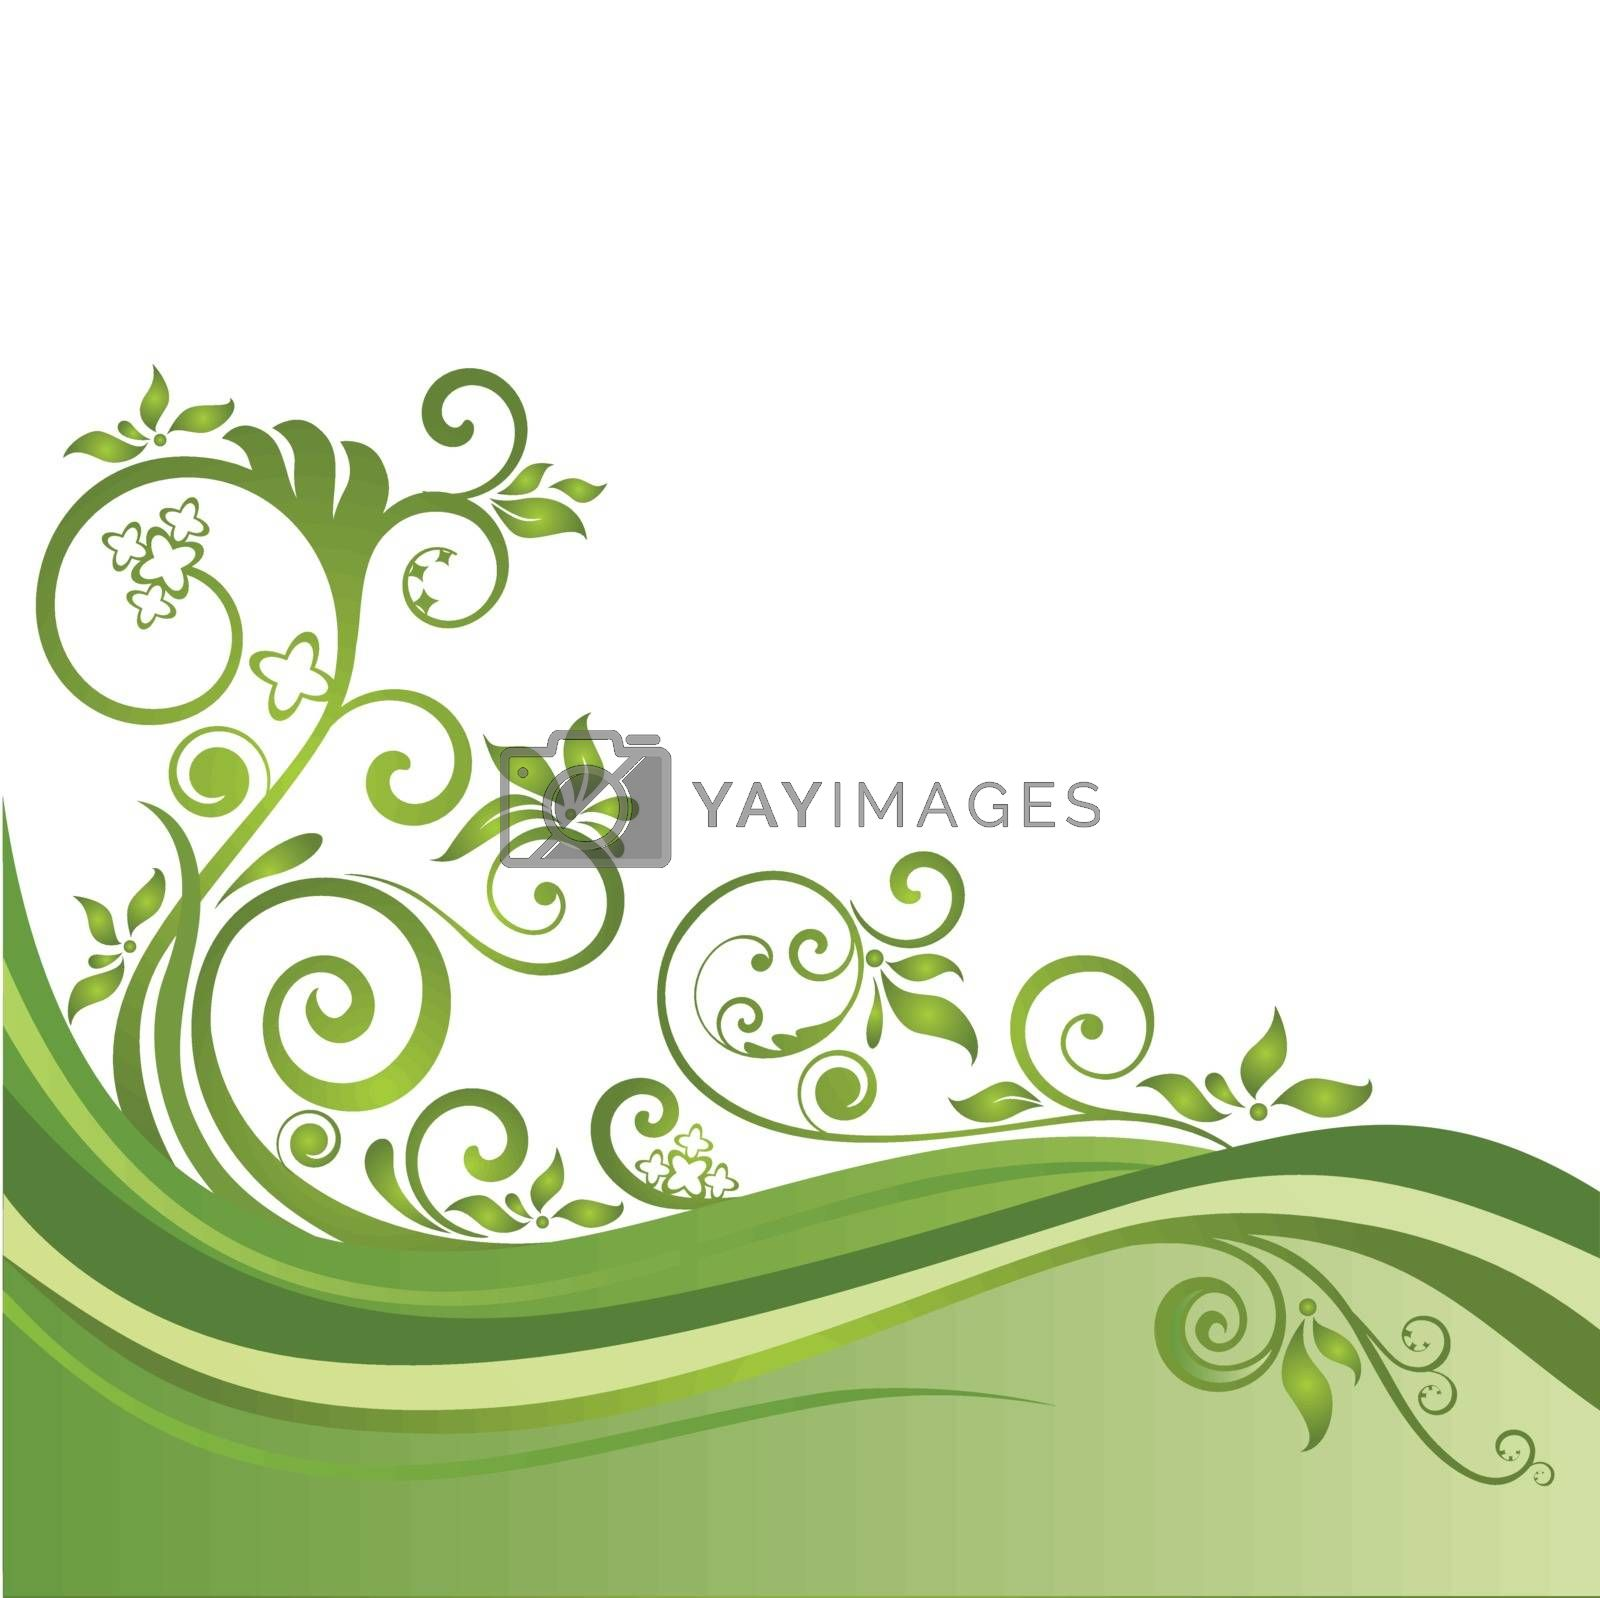 Green floral banner isolated. This image is a vector illustration.